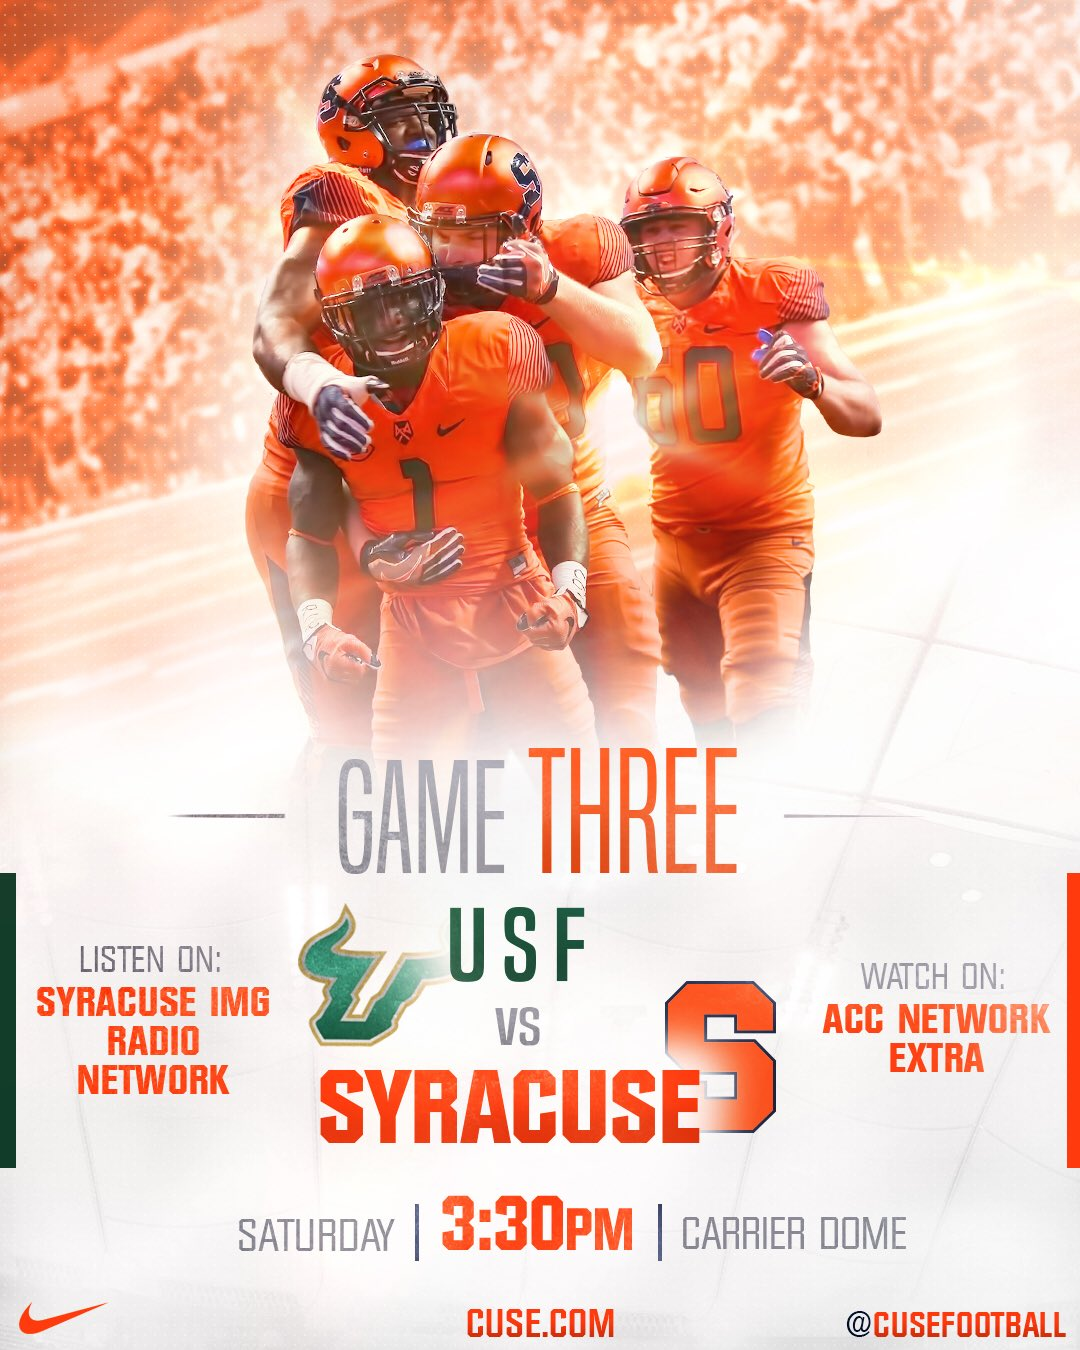 Good luck to @Cuse football as they face USF! Let's Go Orange! https://t.co/AfMTmGUzsP 🍊🏈 #USFvsCUSE #OrangeCentral https://t.co/nTwPMaViuA